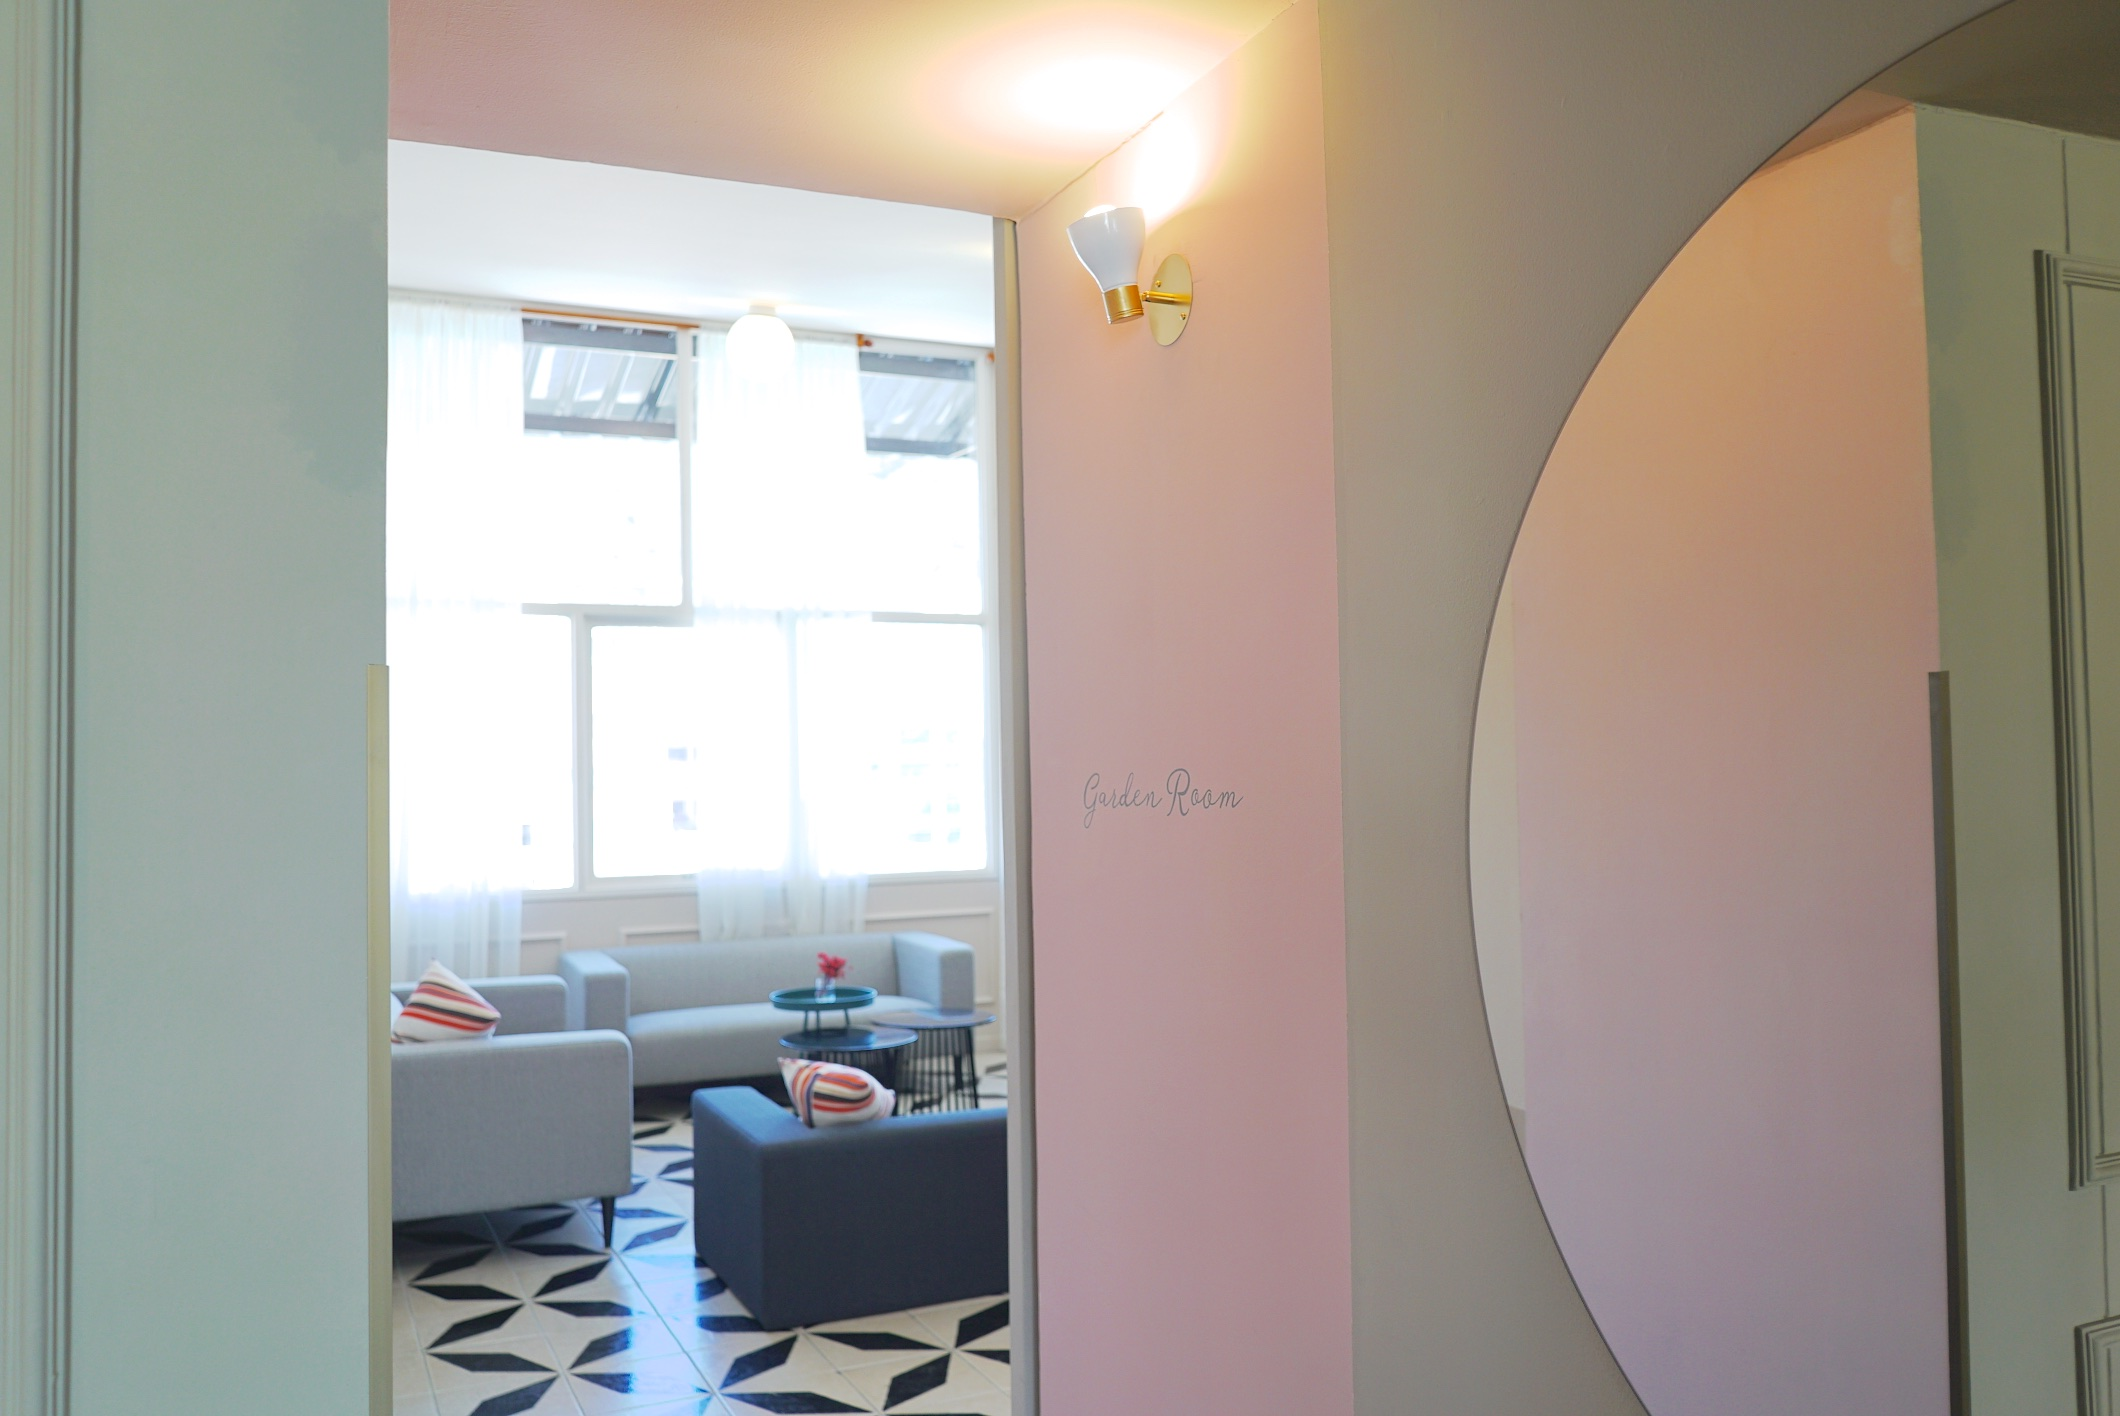 A pale pink and green entryway leads to the Garden Room.